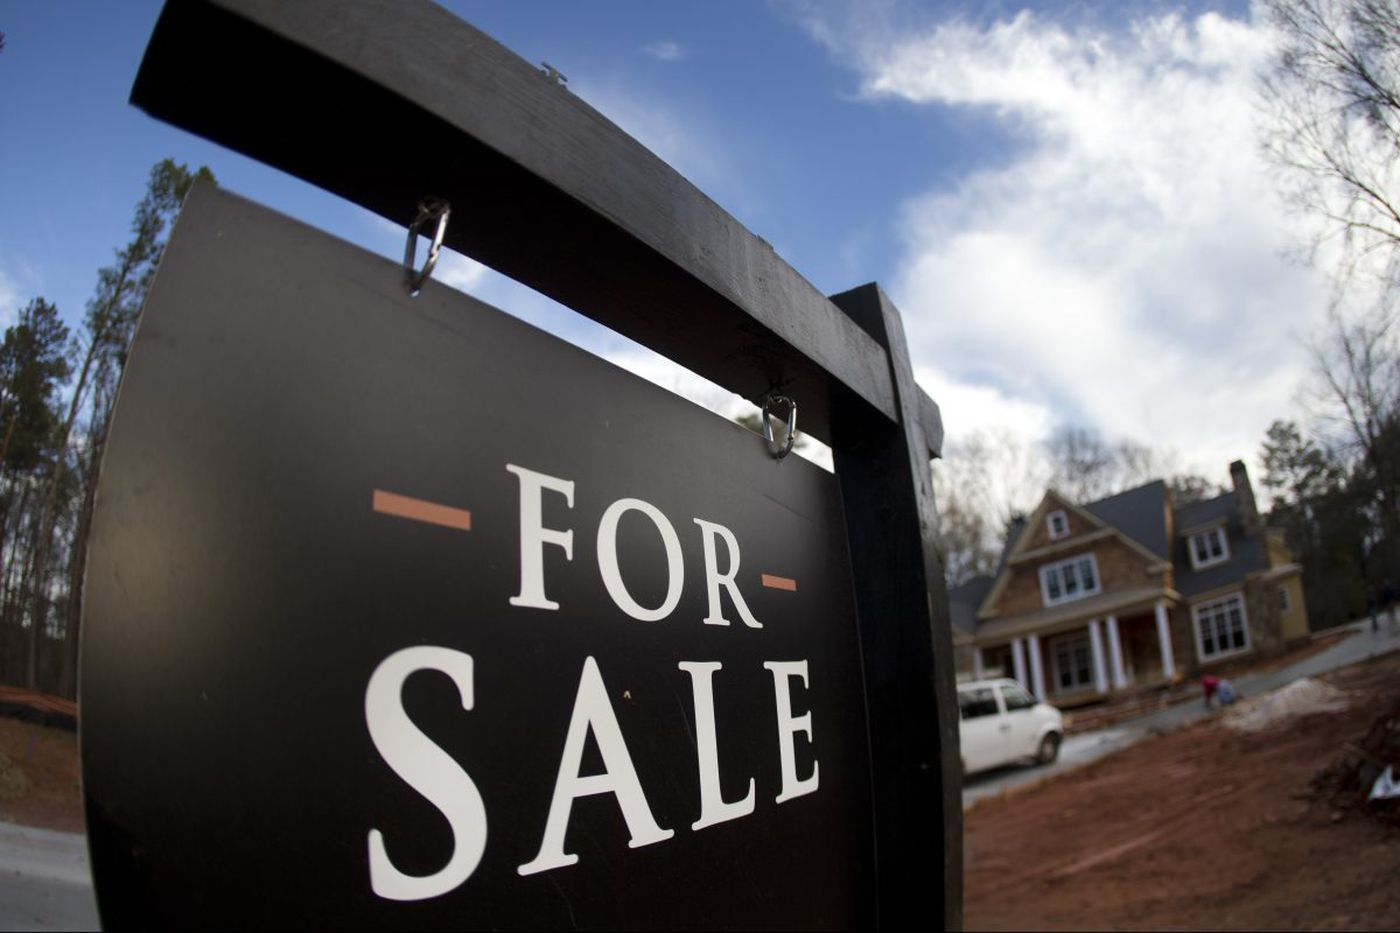 For minorities, there's still inequality in the housing market